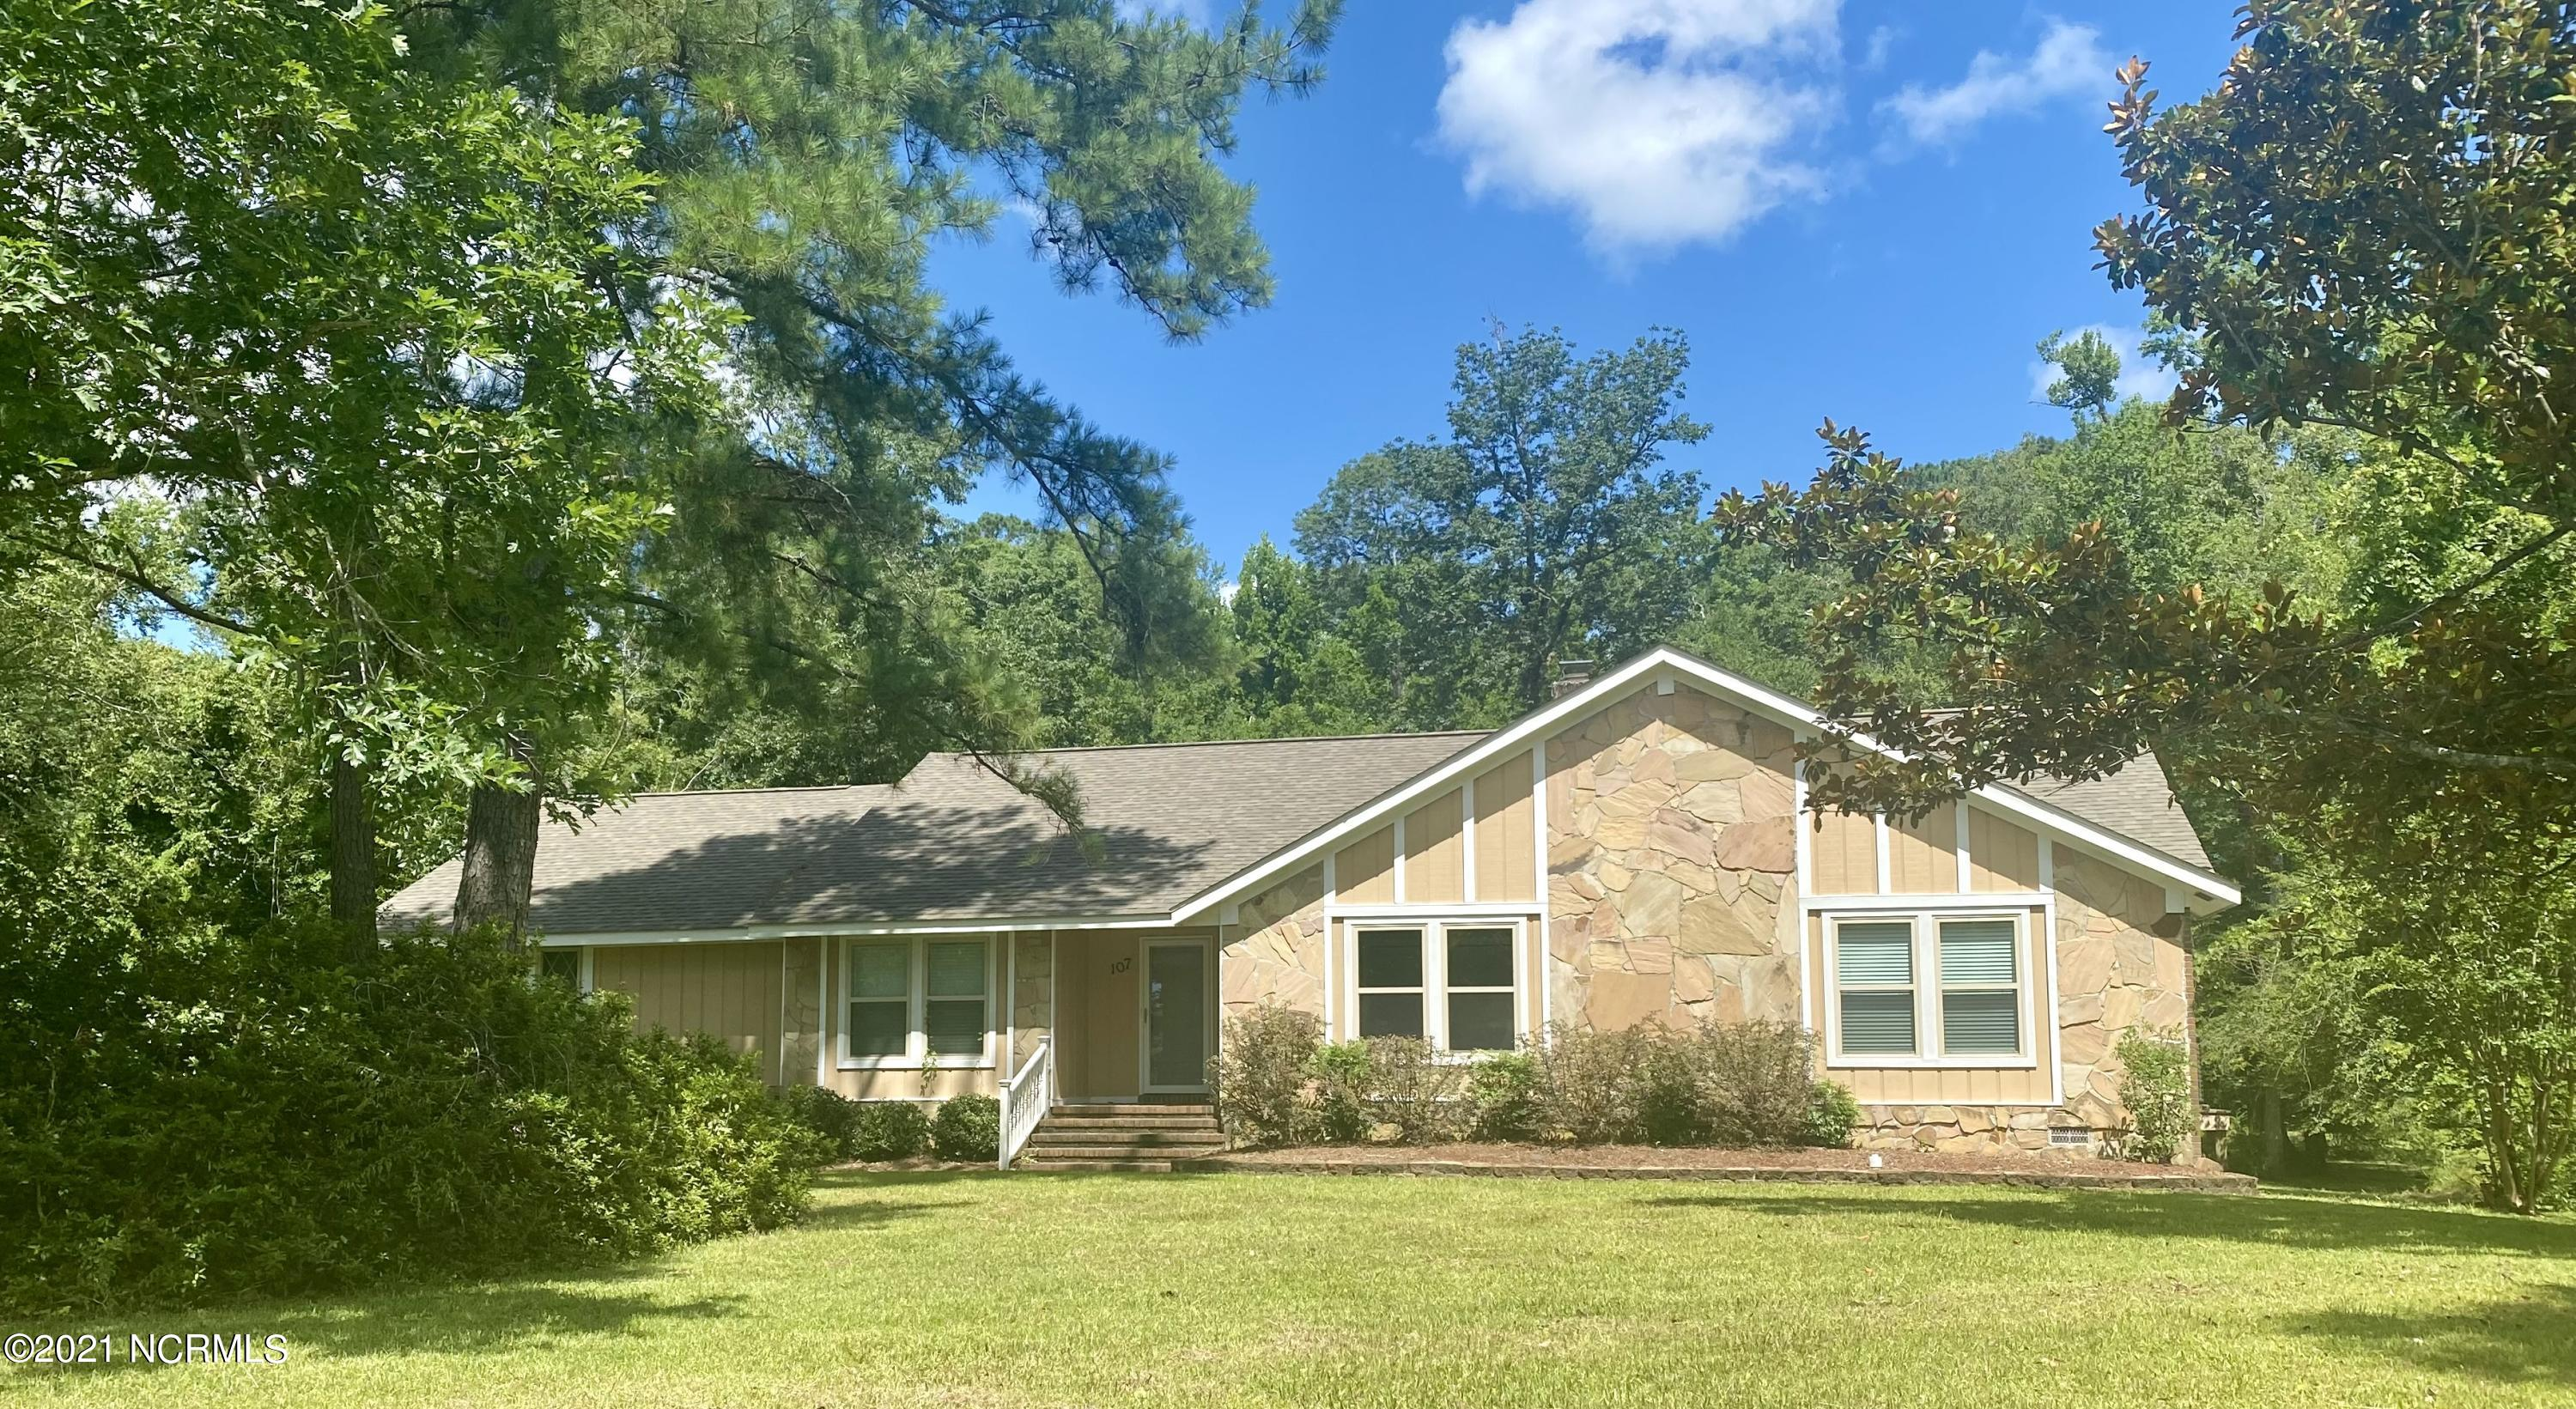 You will definitely fall in love with this beautiful 5 bedroom 3 bath home! nestled in Country Club acres sits on a little over an acre!   So much privacy while being conveniently located to everything Jacksonville has to offer!  Call today for your private showing!